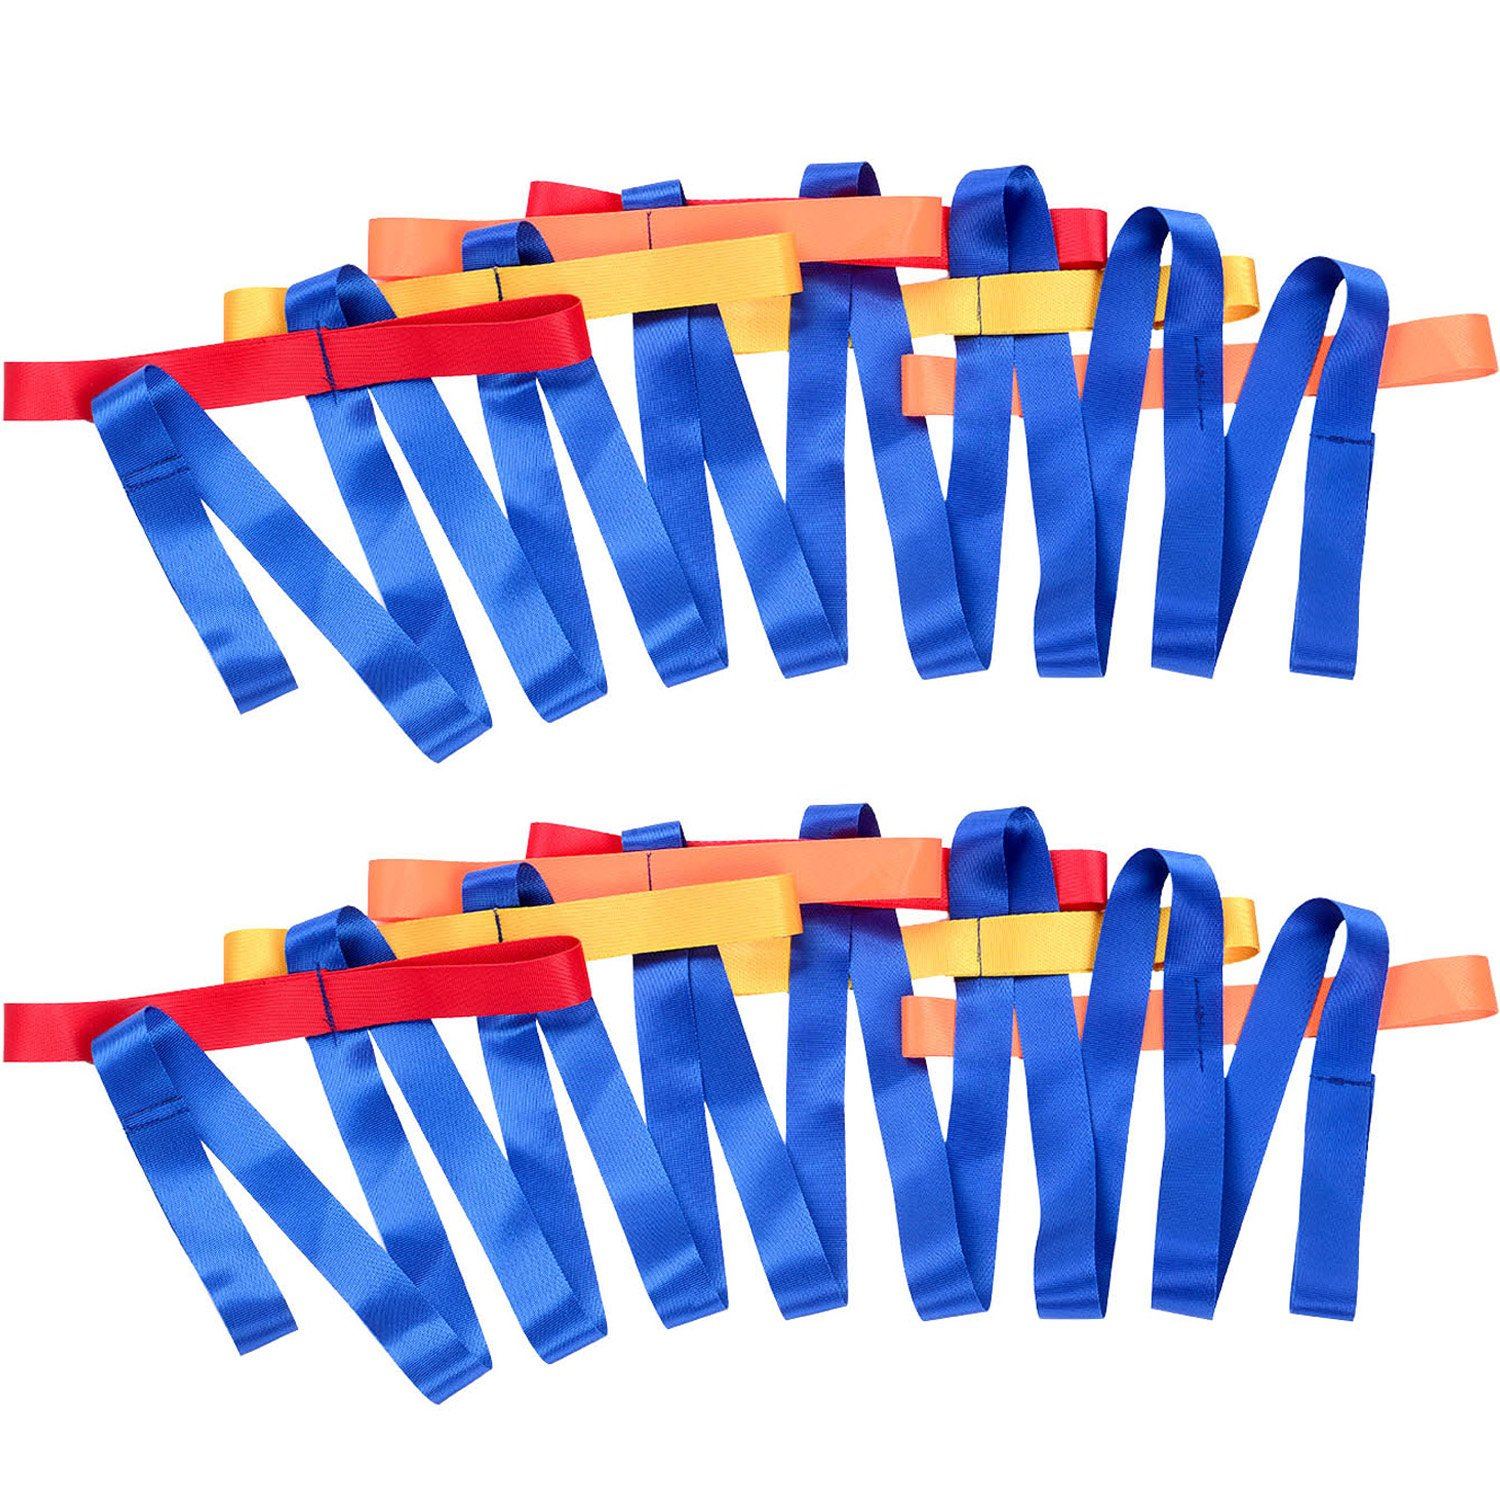 TecUnite 2 Packs Short Walking Rope with 12 Handles for Preschool Children Toddlers Daycare Schools Teachers